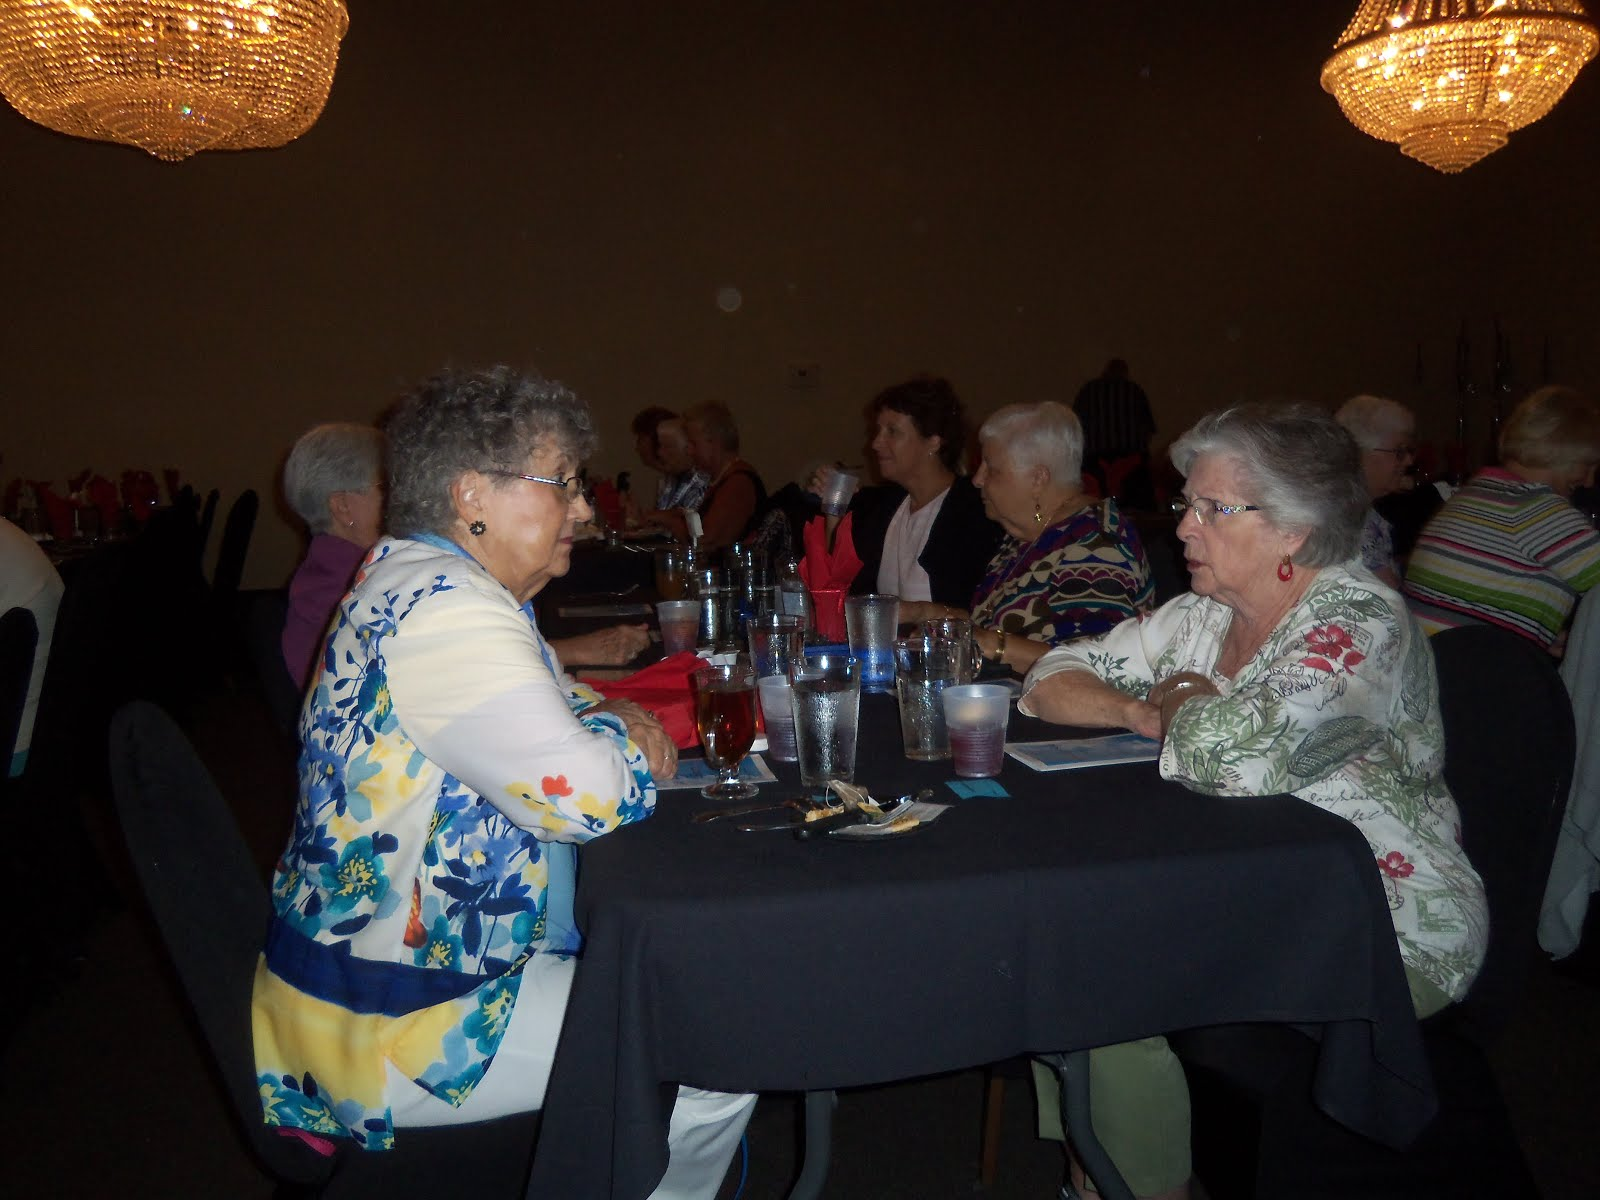 Early Bird Dinner Theatre 11/21/15